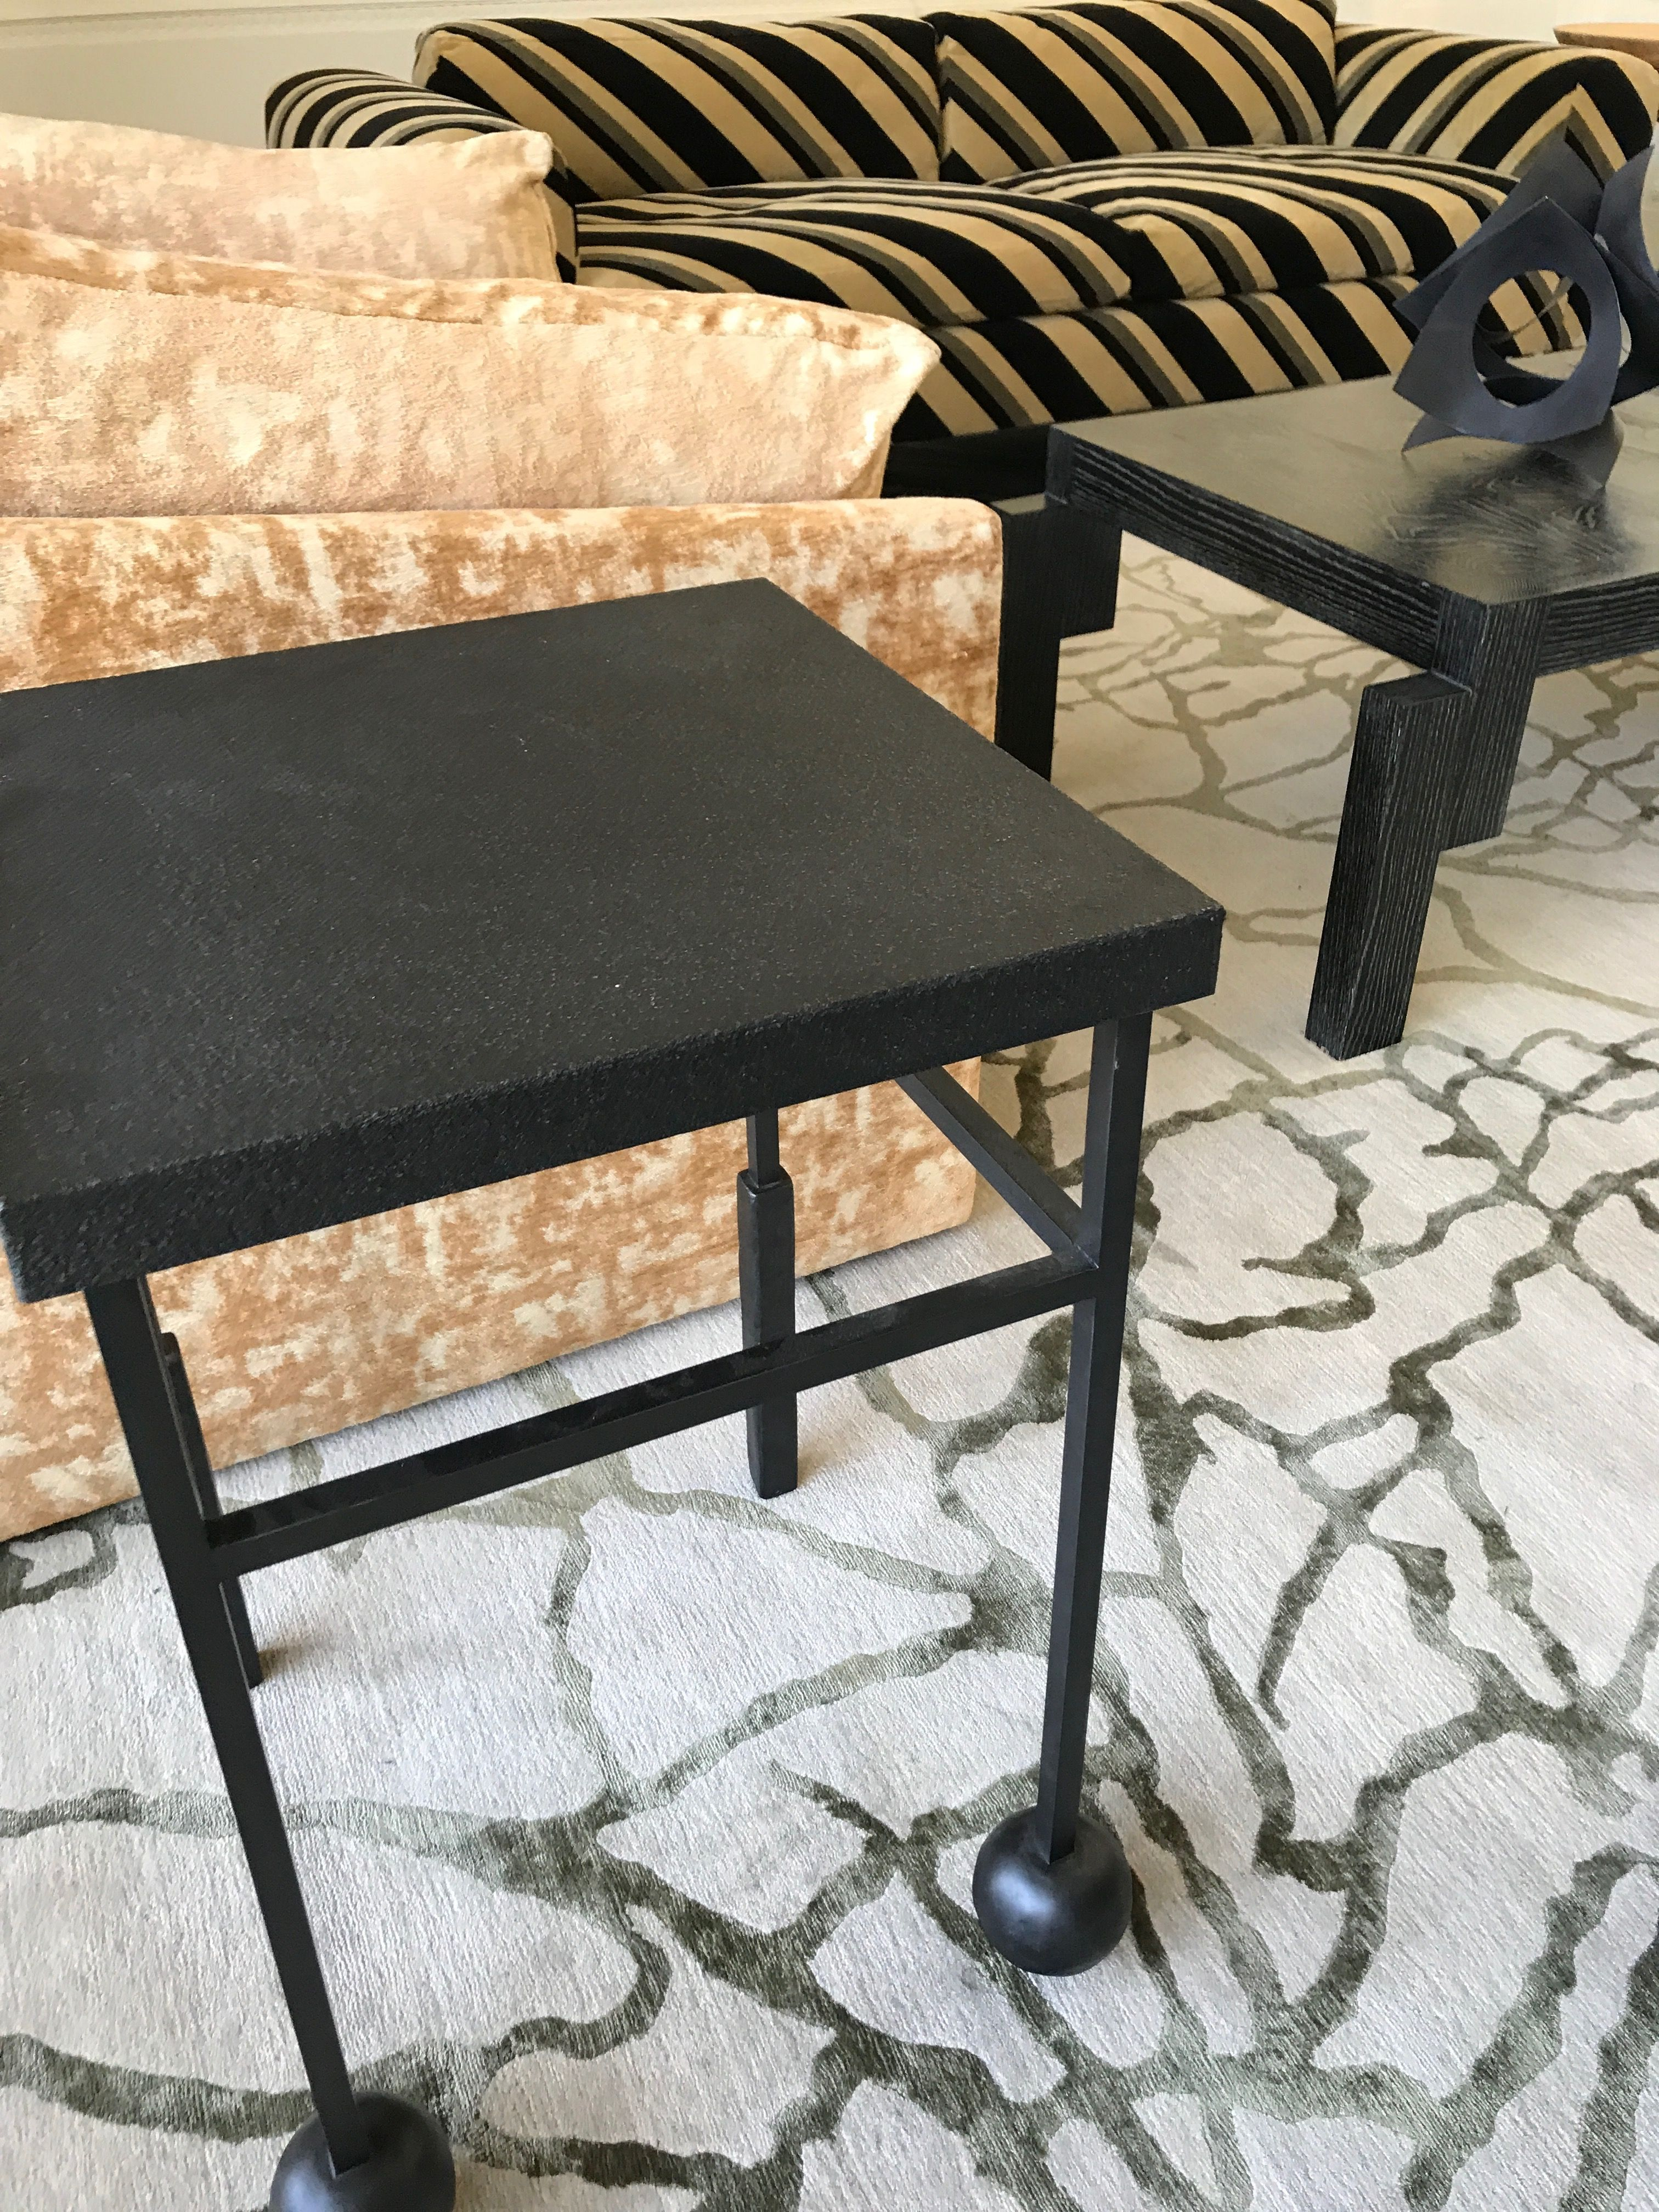 Decoration Nimes Nimes Side Table Apartment Coffee Table To Dining Table